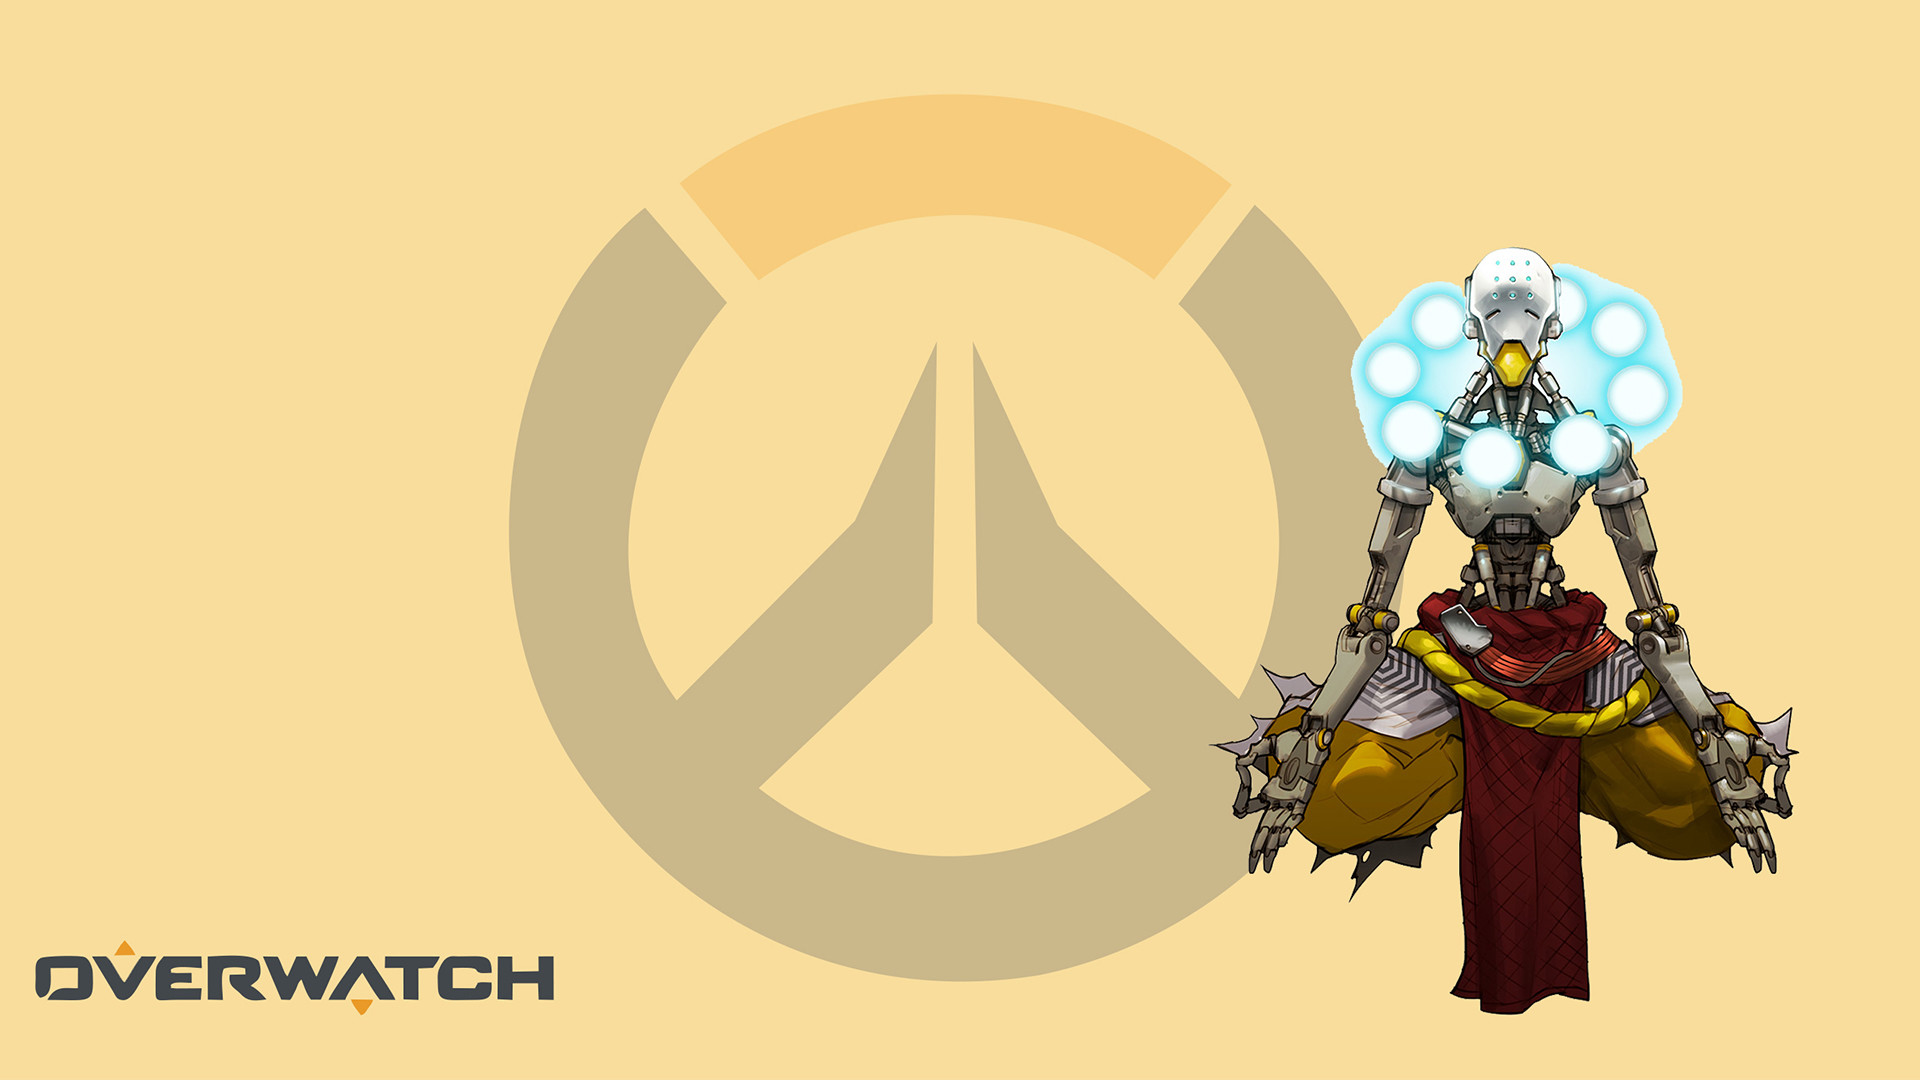 1920x1080 Overwatch Zenyatta Wallpapers Phone